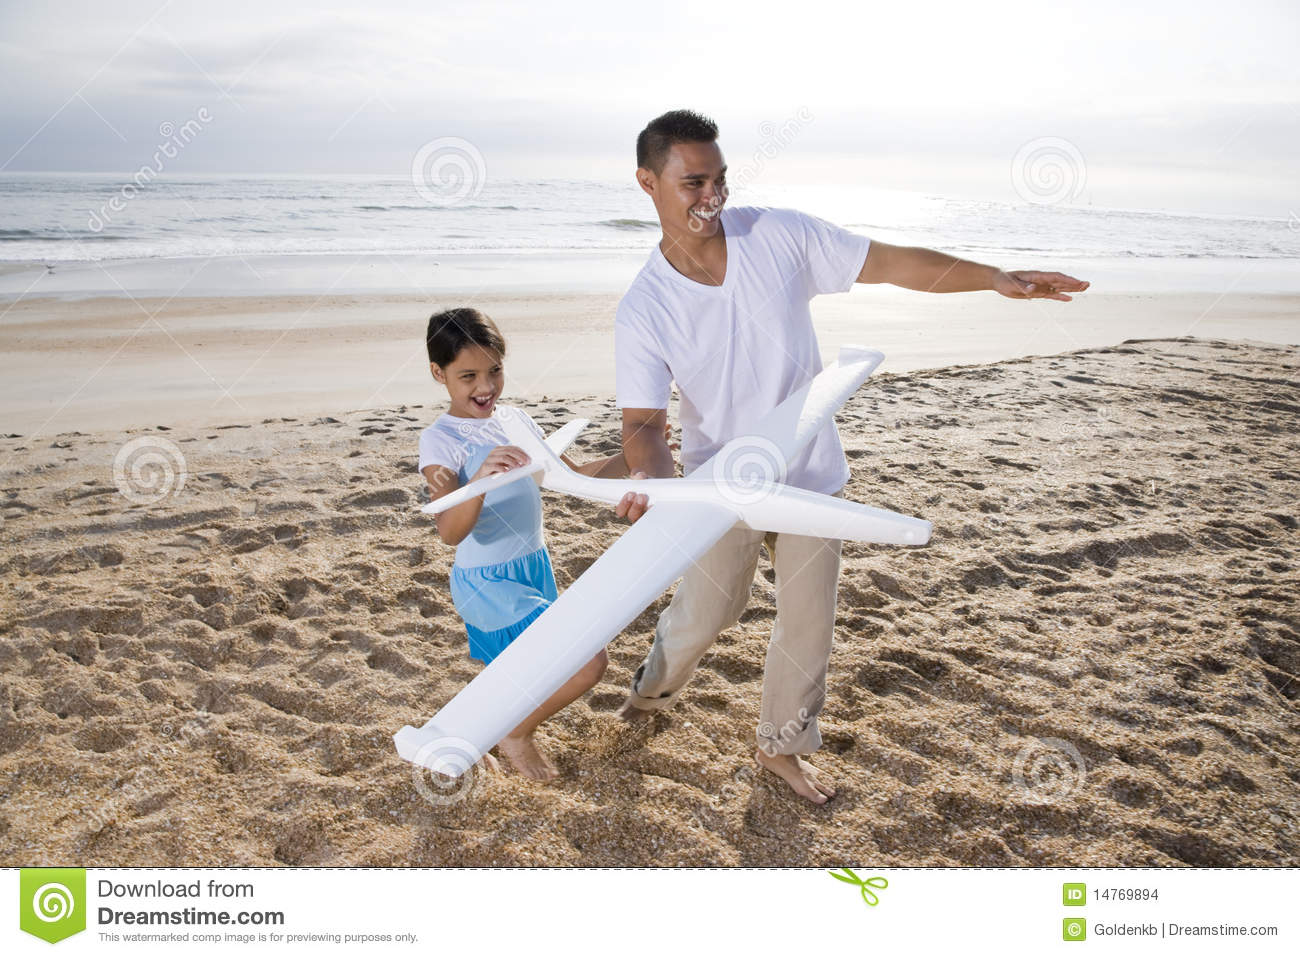 Download Hispanic Dad, Girl Playing With Toy Plane On Beach Stock Photo - Image of playing, cheerful: 14769894